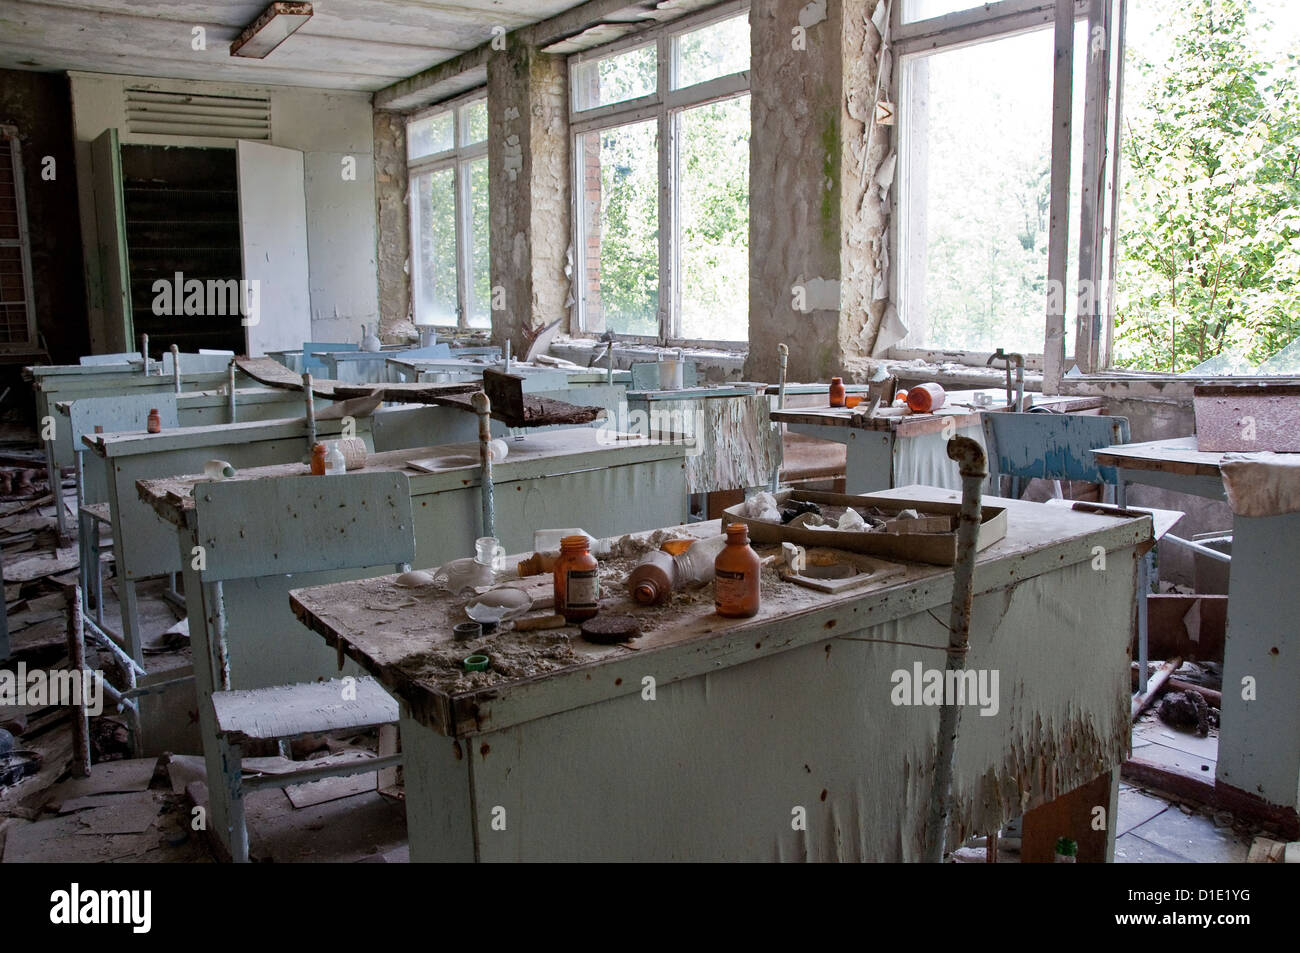 Chernobyl disaster results. This is chemistry classroom in abandoned school in small city Pripyat - Stock Image